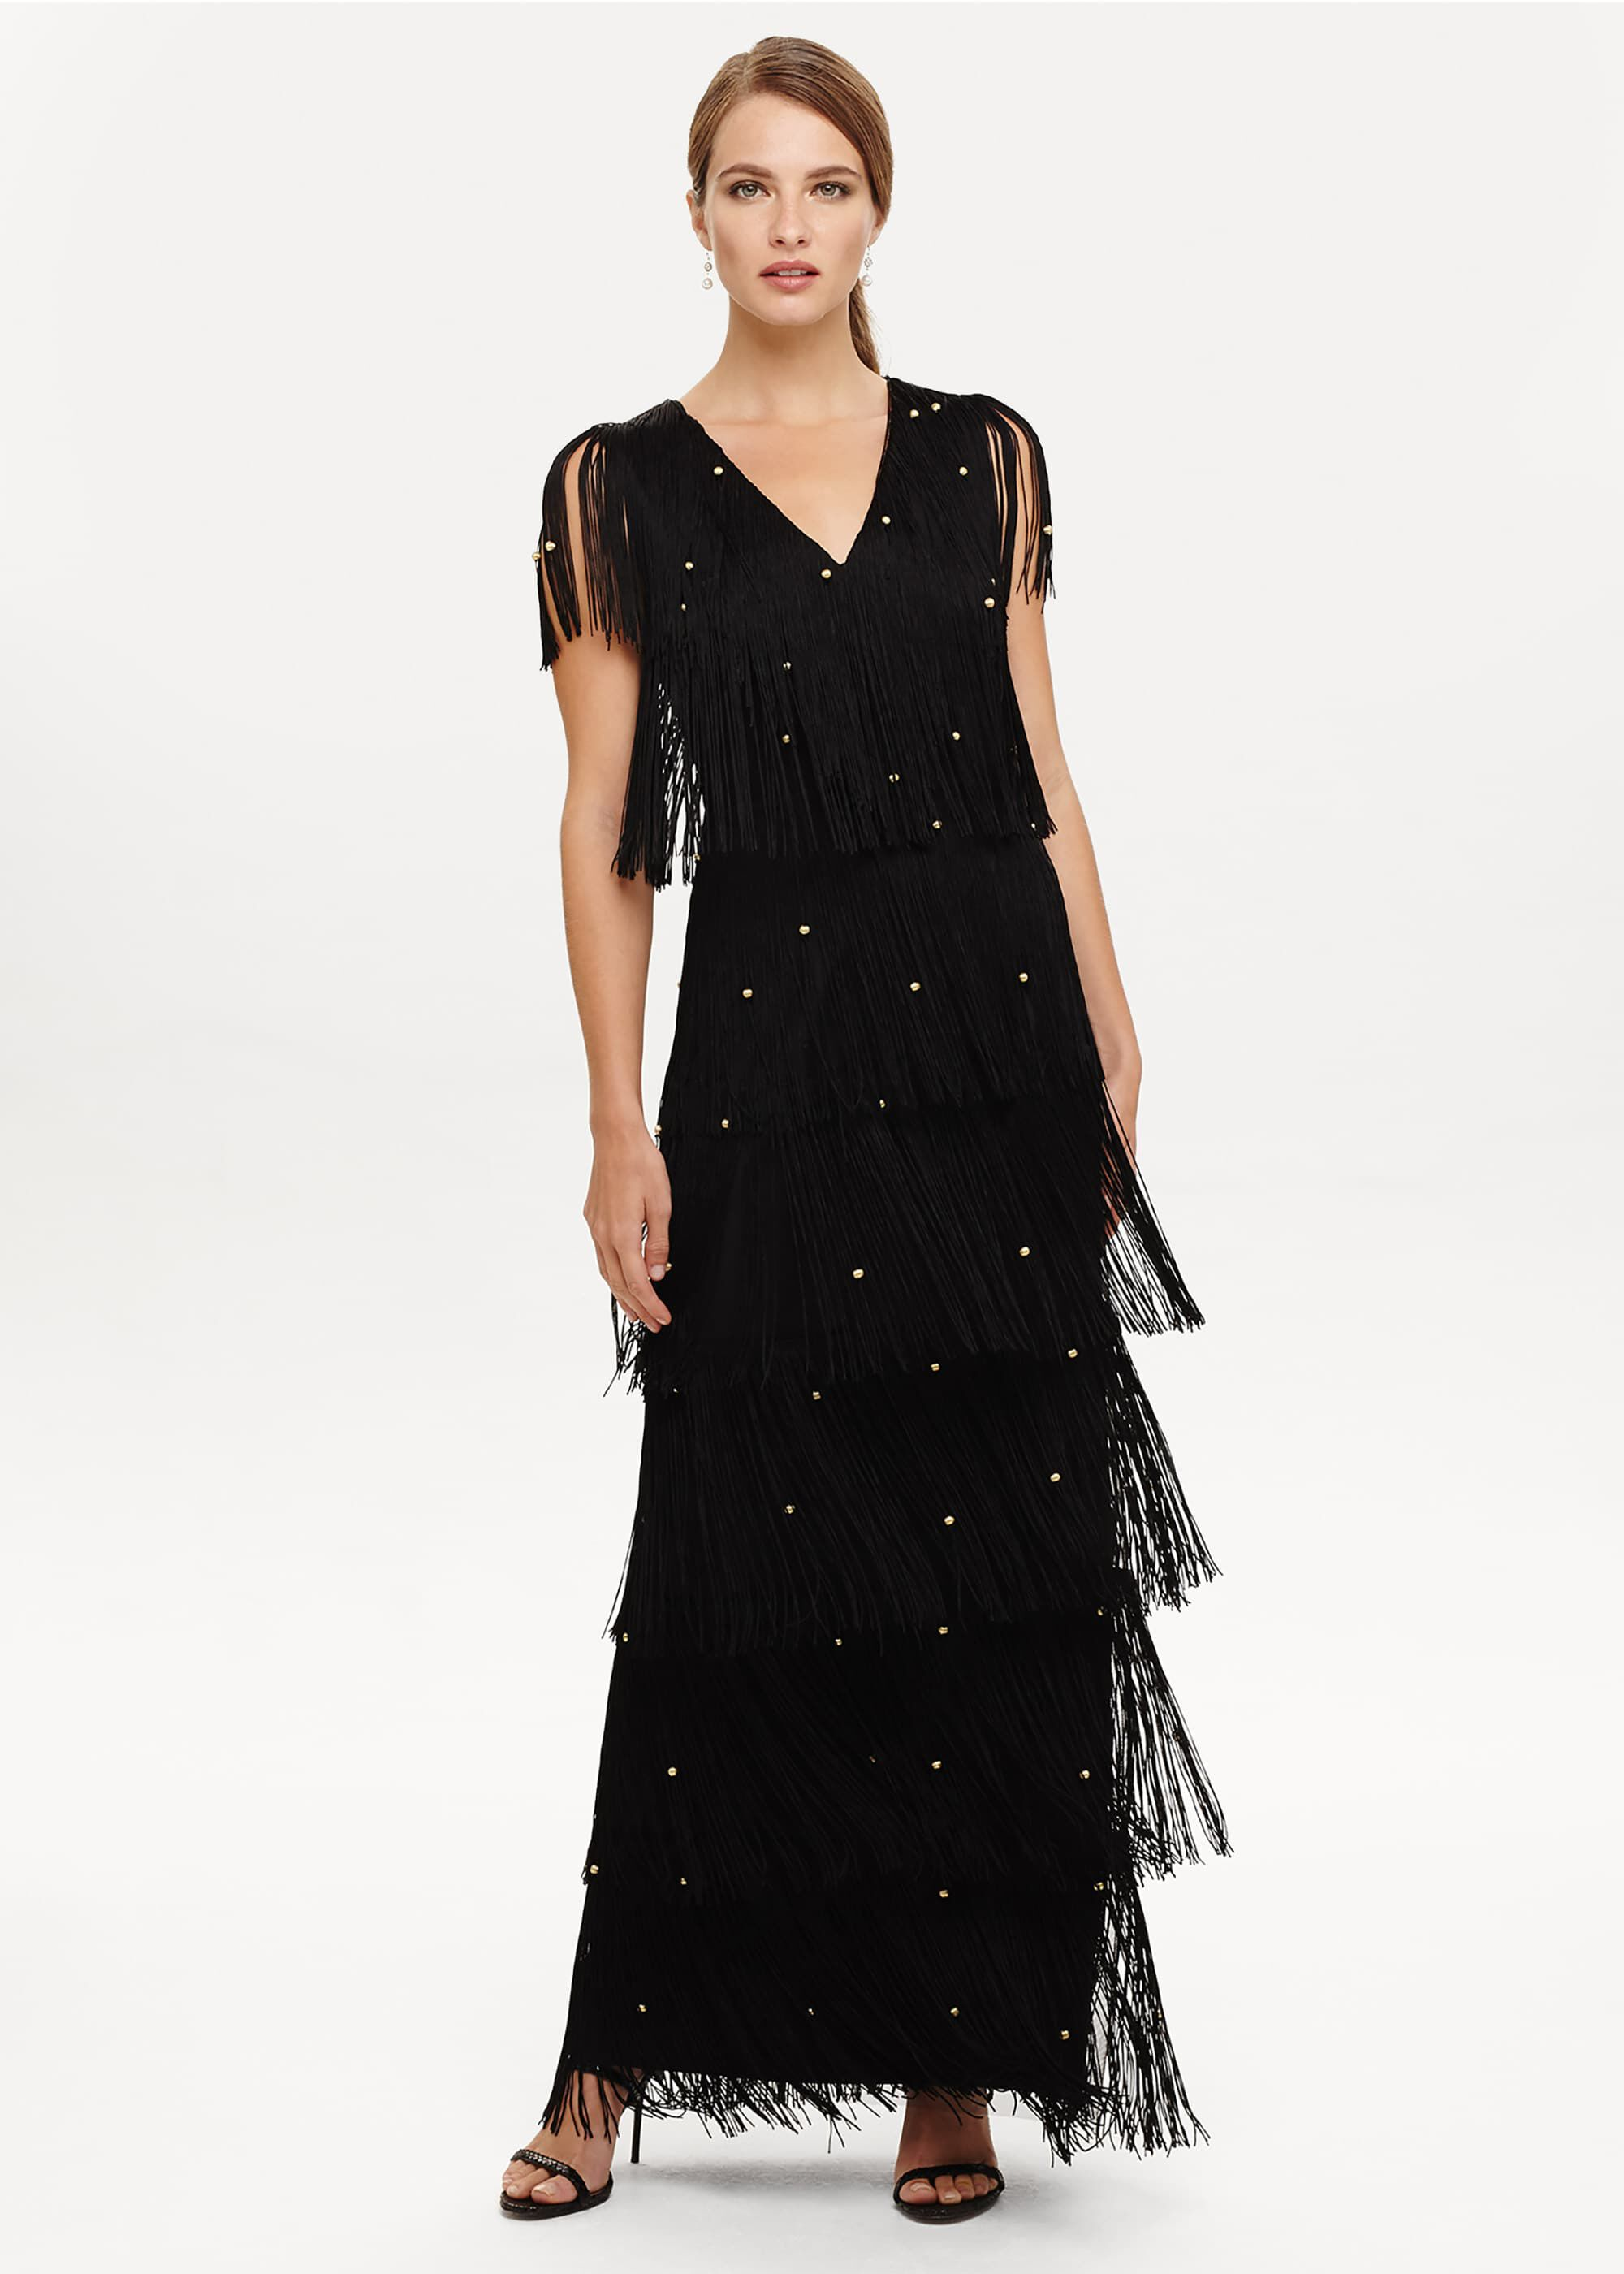 Phase Eight Kandice Fringe Dress, Black, Maxi, Occasion Dress